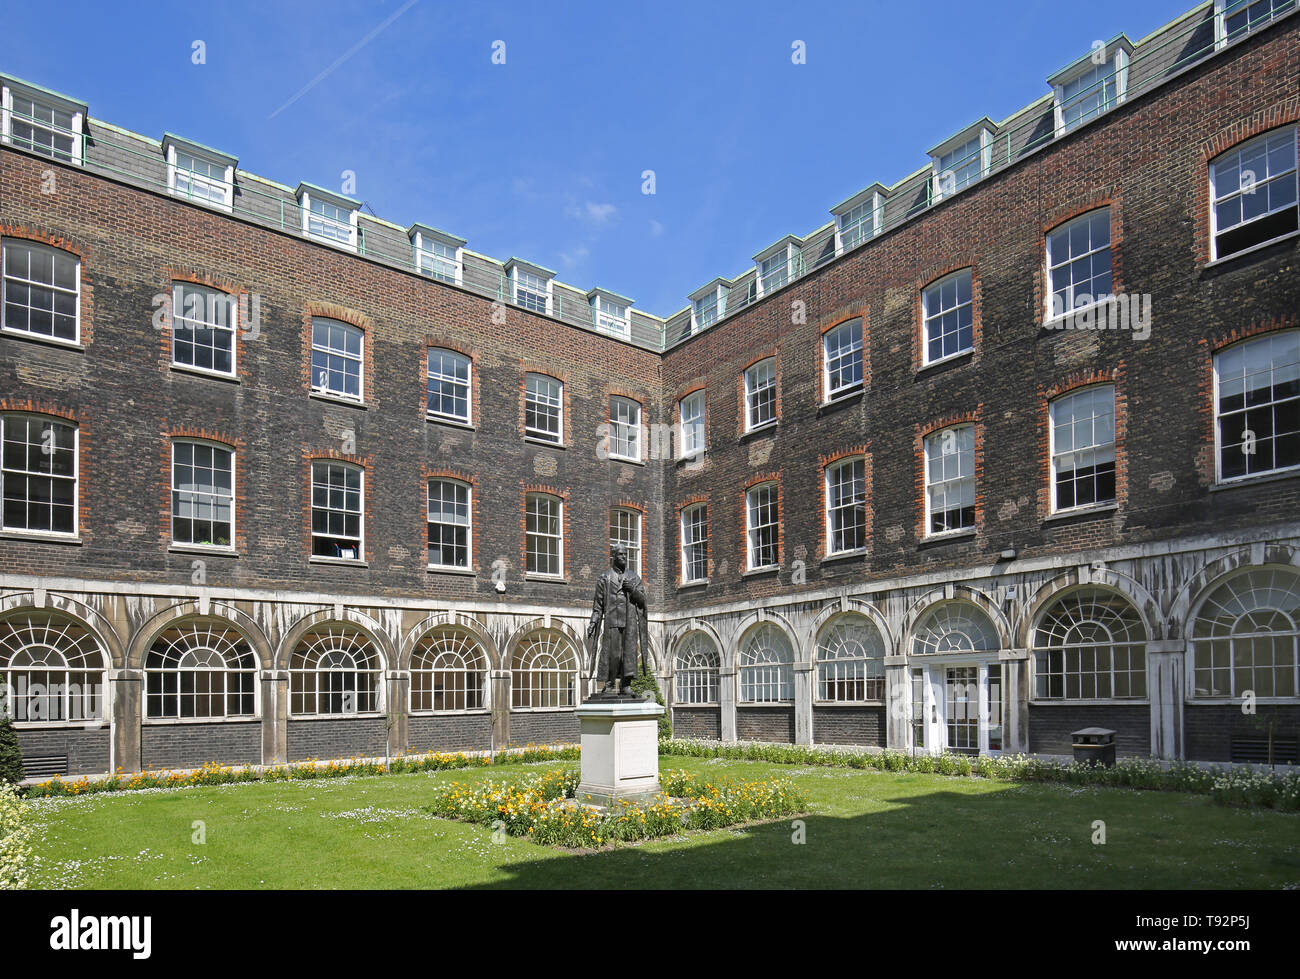 Coutyard of the original Victorian Guys Hospital building. Shows statue Vicount Nuffield. - Stock Image